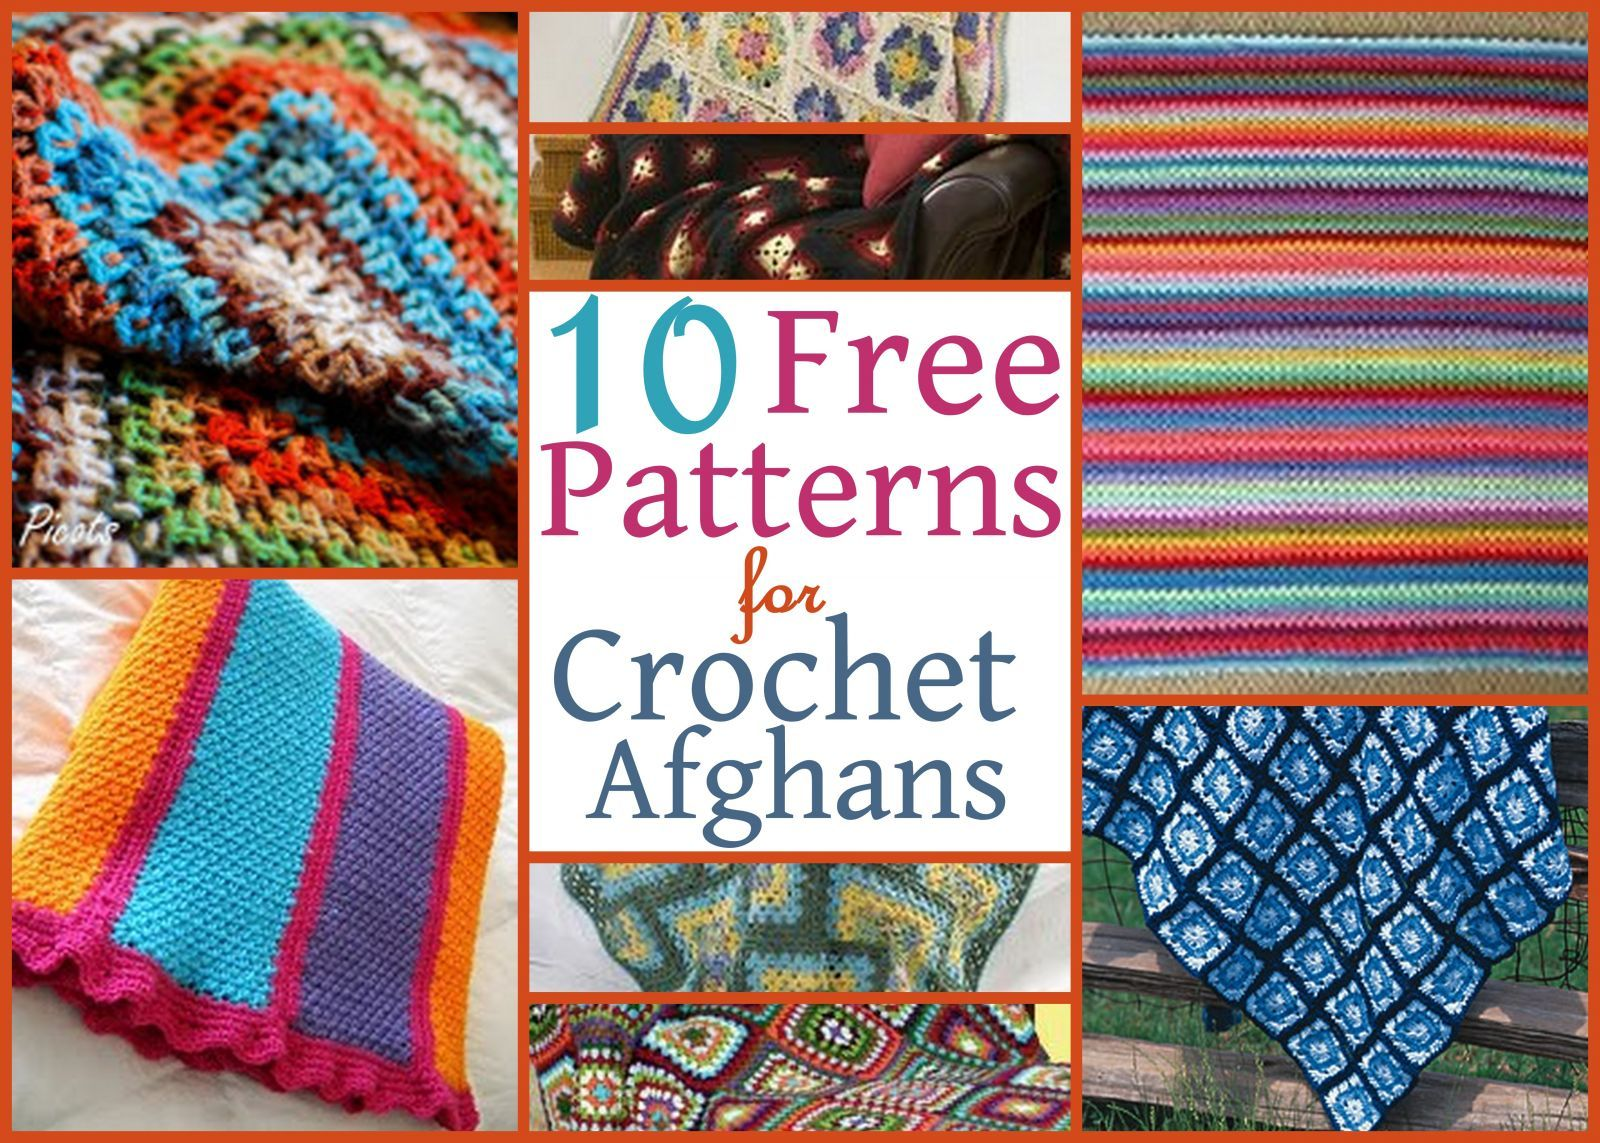 10 free patterns for crochet afghans crochet afghans crocheted 10 free patterns for crochet afghans bankloansurffo Images